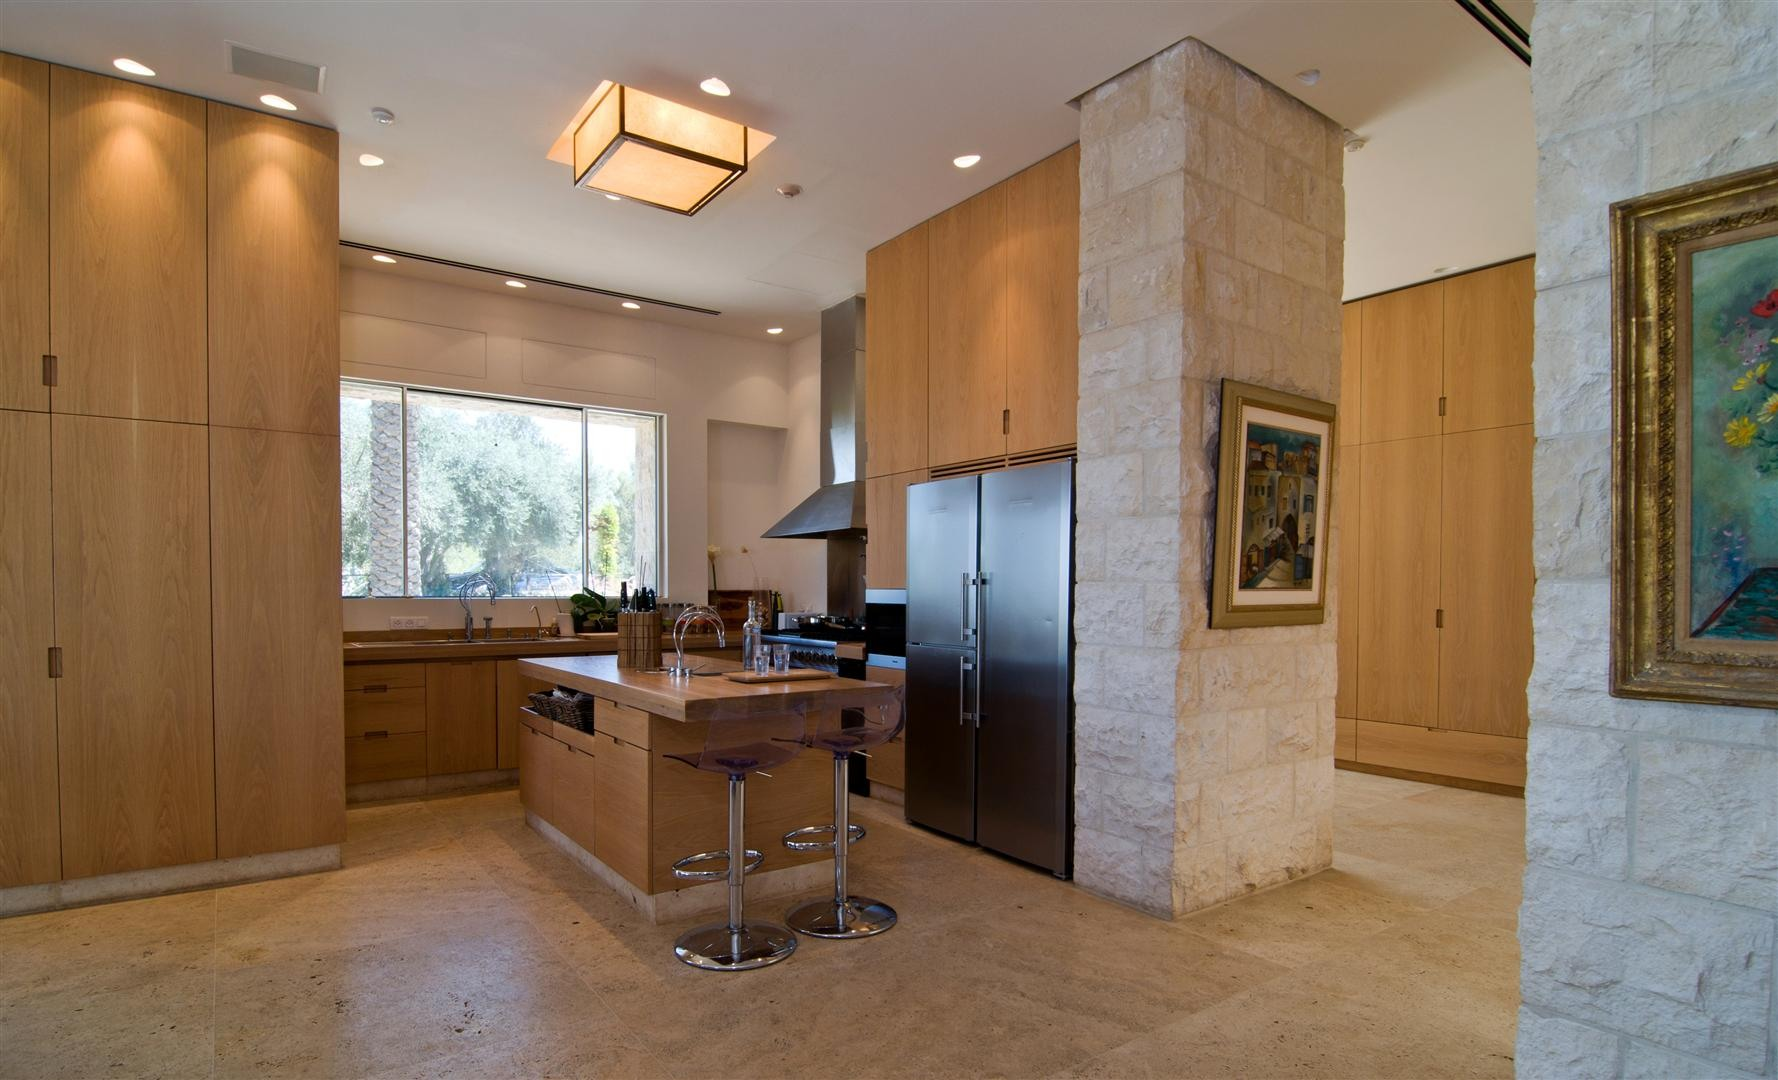 Contemporary Bathroom Design Kitchen Island, Breakfast Bar, Contemporary Stone House In